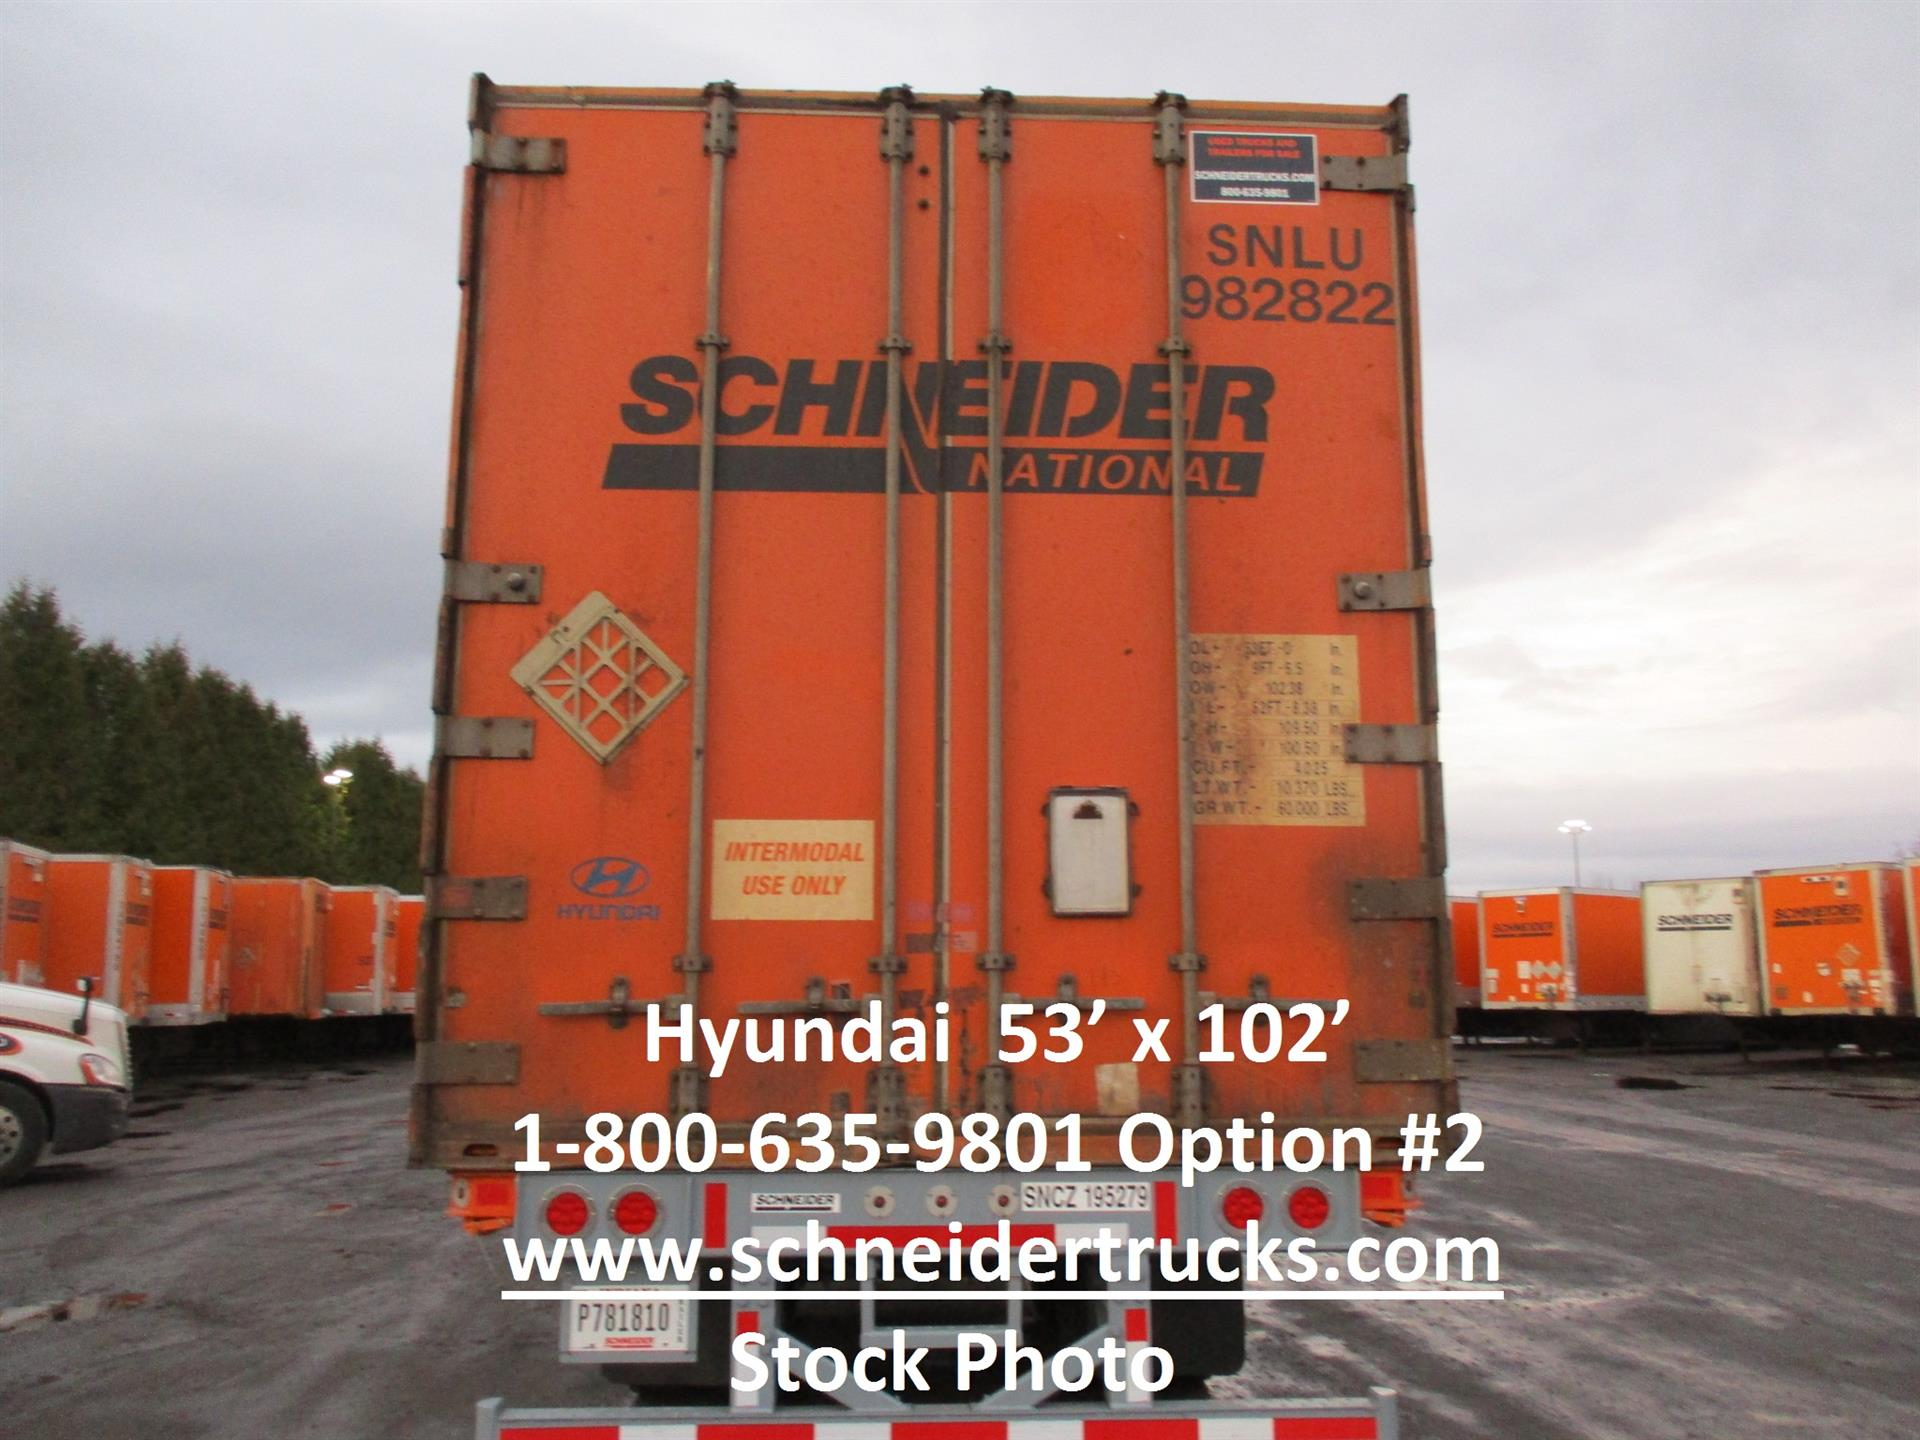 2006 Hyundai Container for sale-59266027